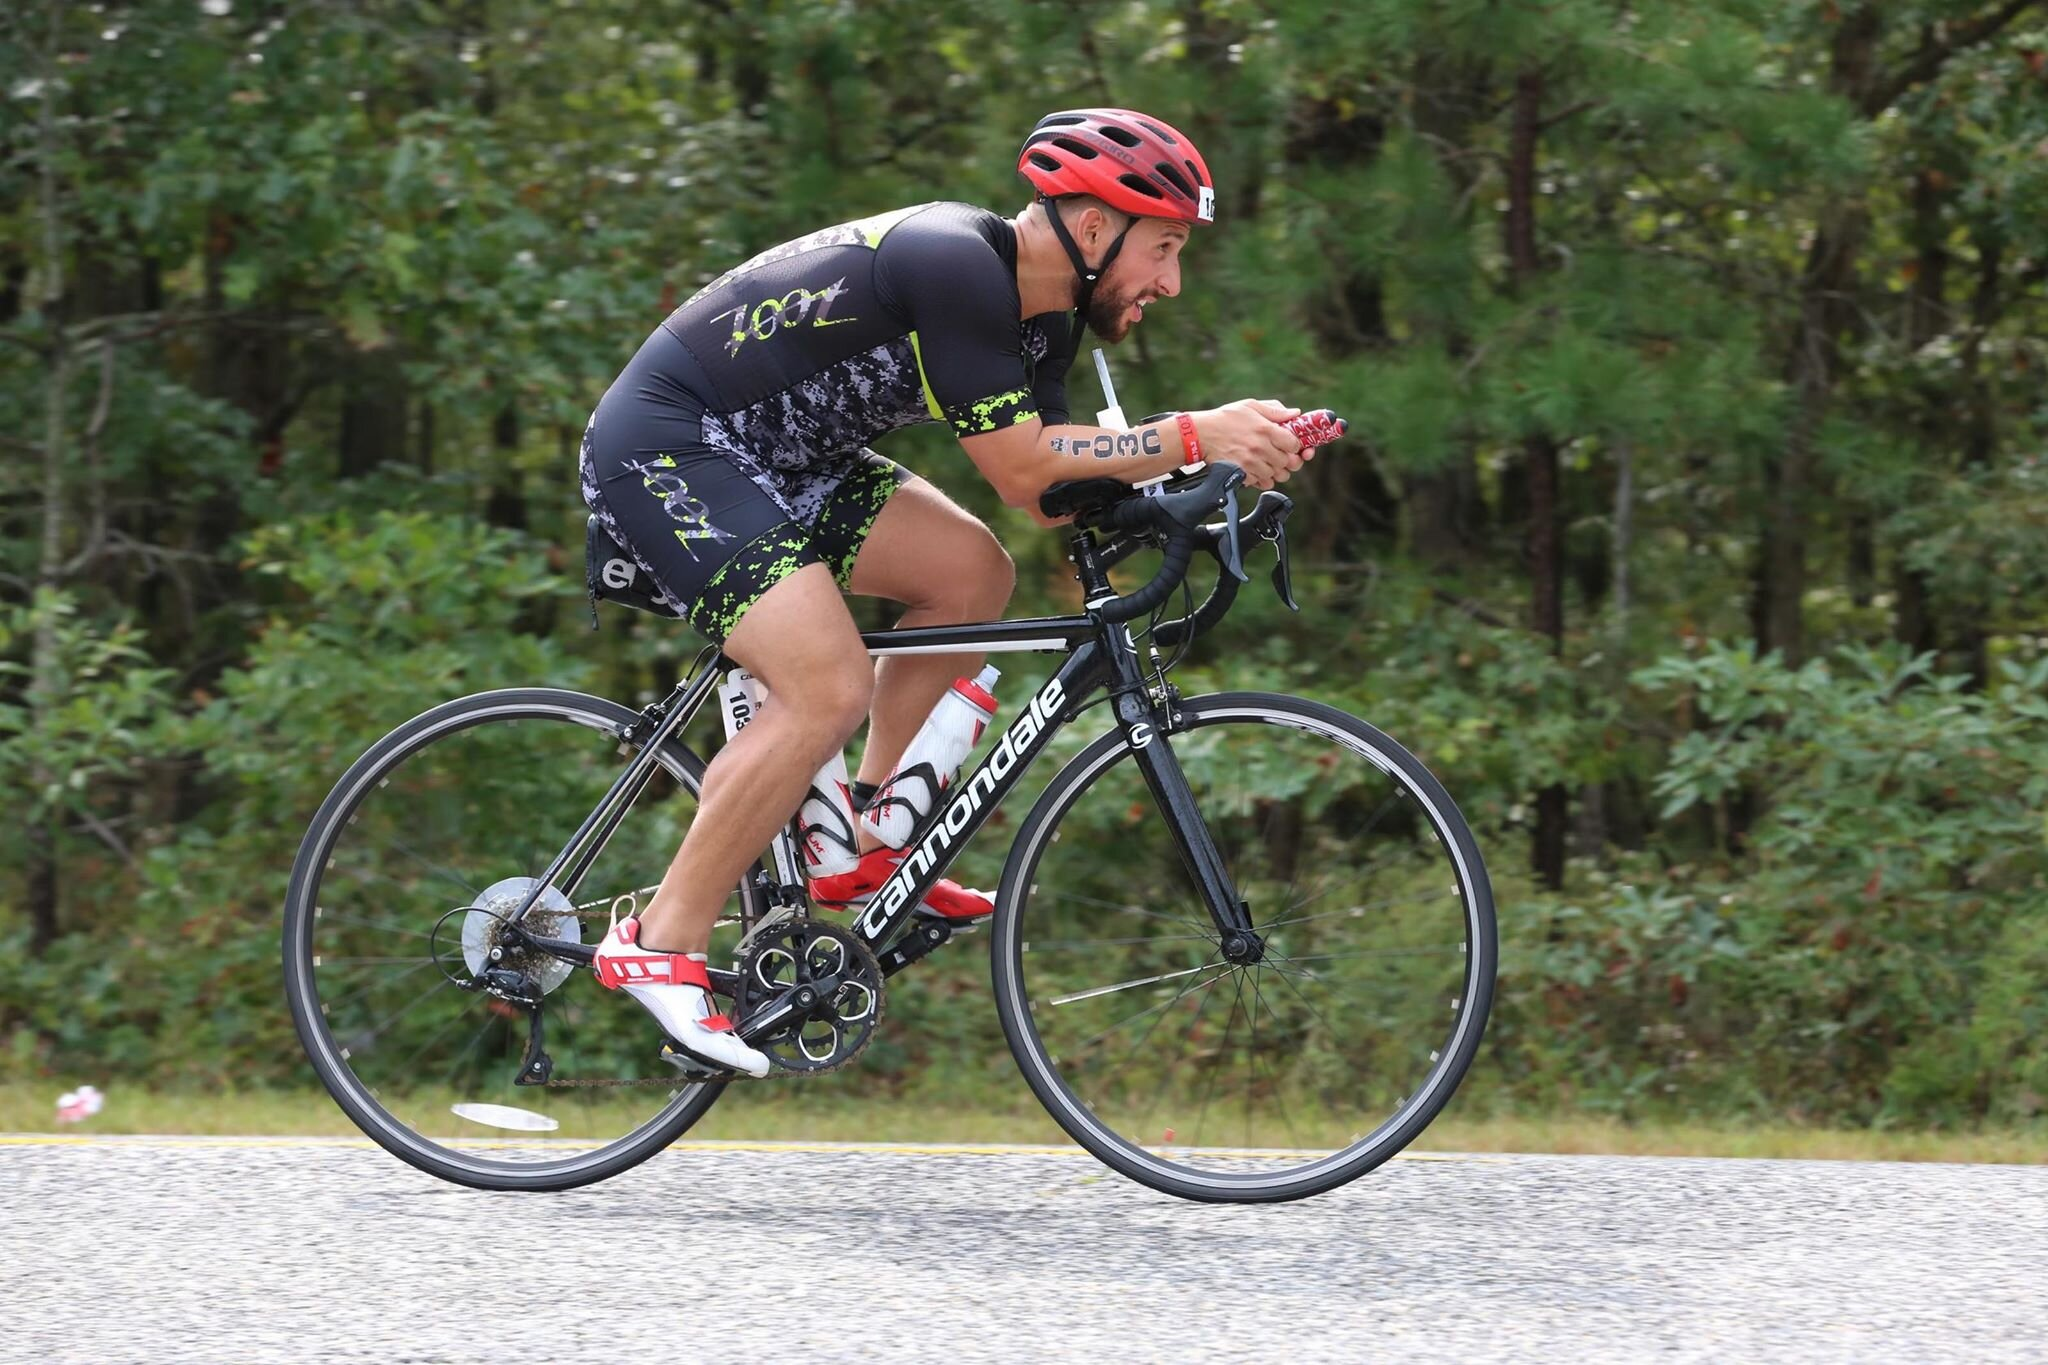 Coach_Terry_Wilson_Pursuit_of_The_Perfect_Race_IRONMAN_Atlantic_City_Bobby_Campos_6.jpg